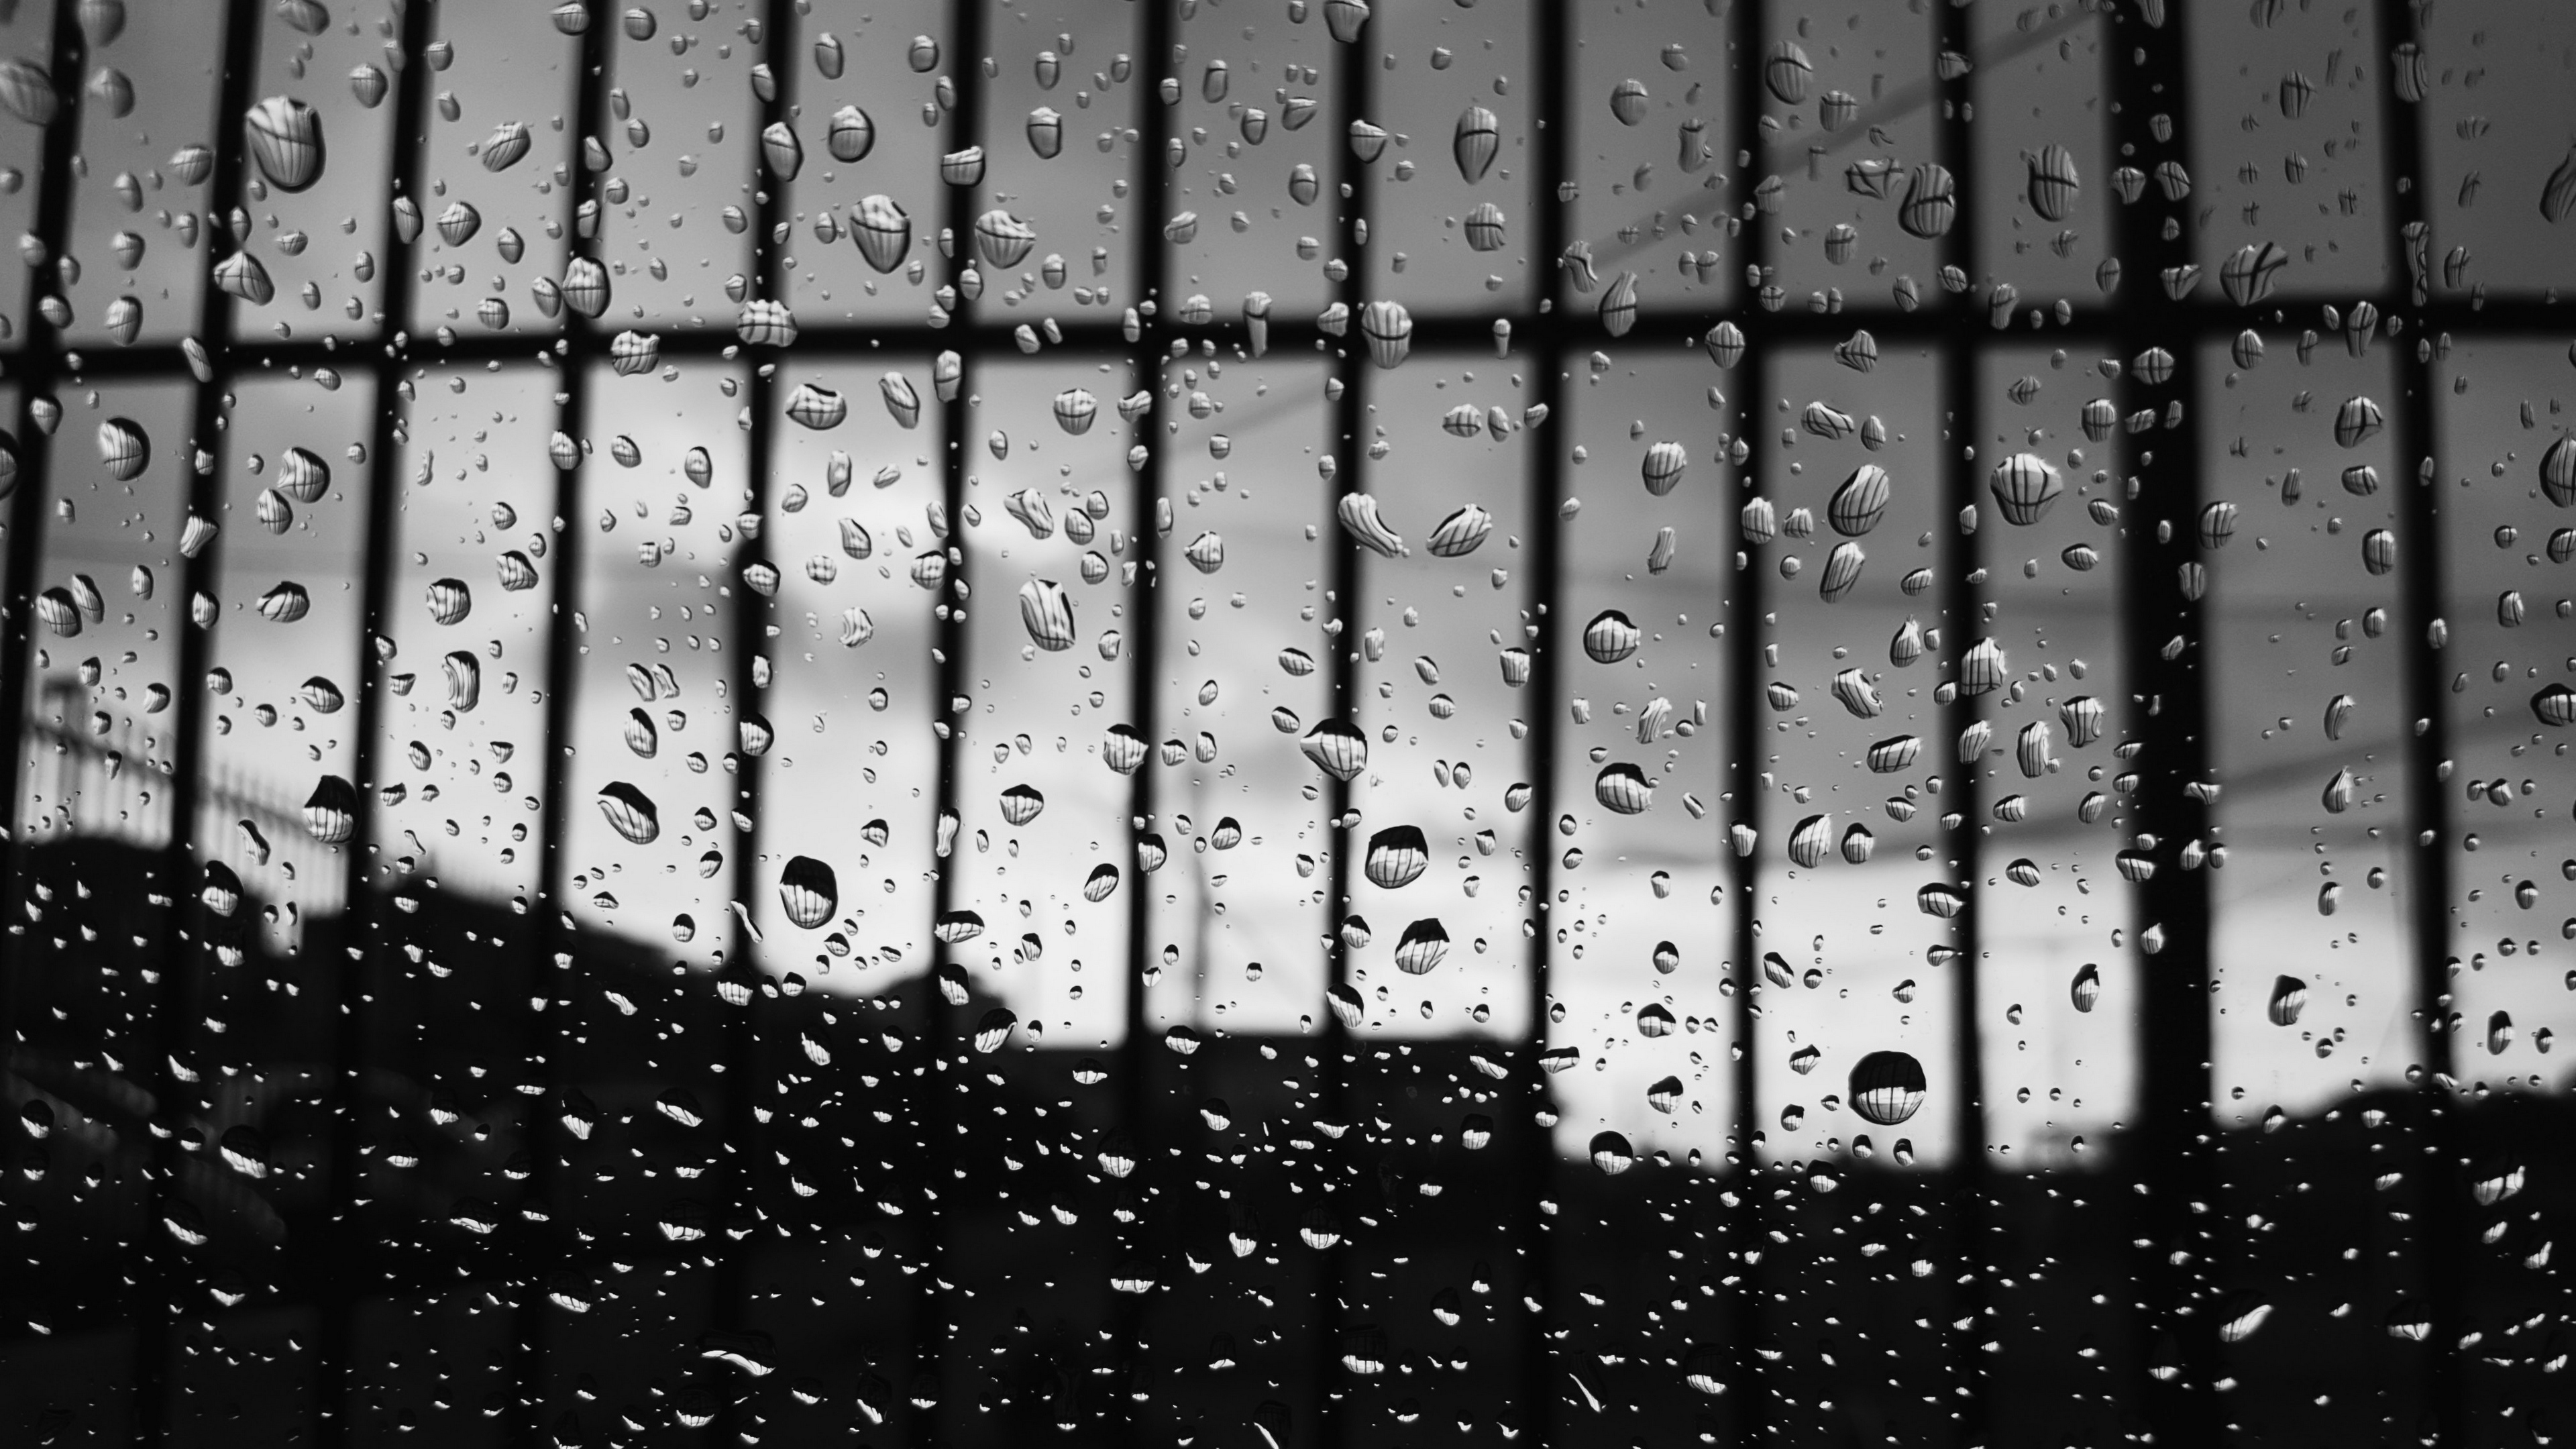 drops glass surface bw 4k 1540575213 - drops, glass, surface, bw 4k - Surface, Glass, Drops